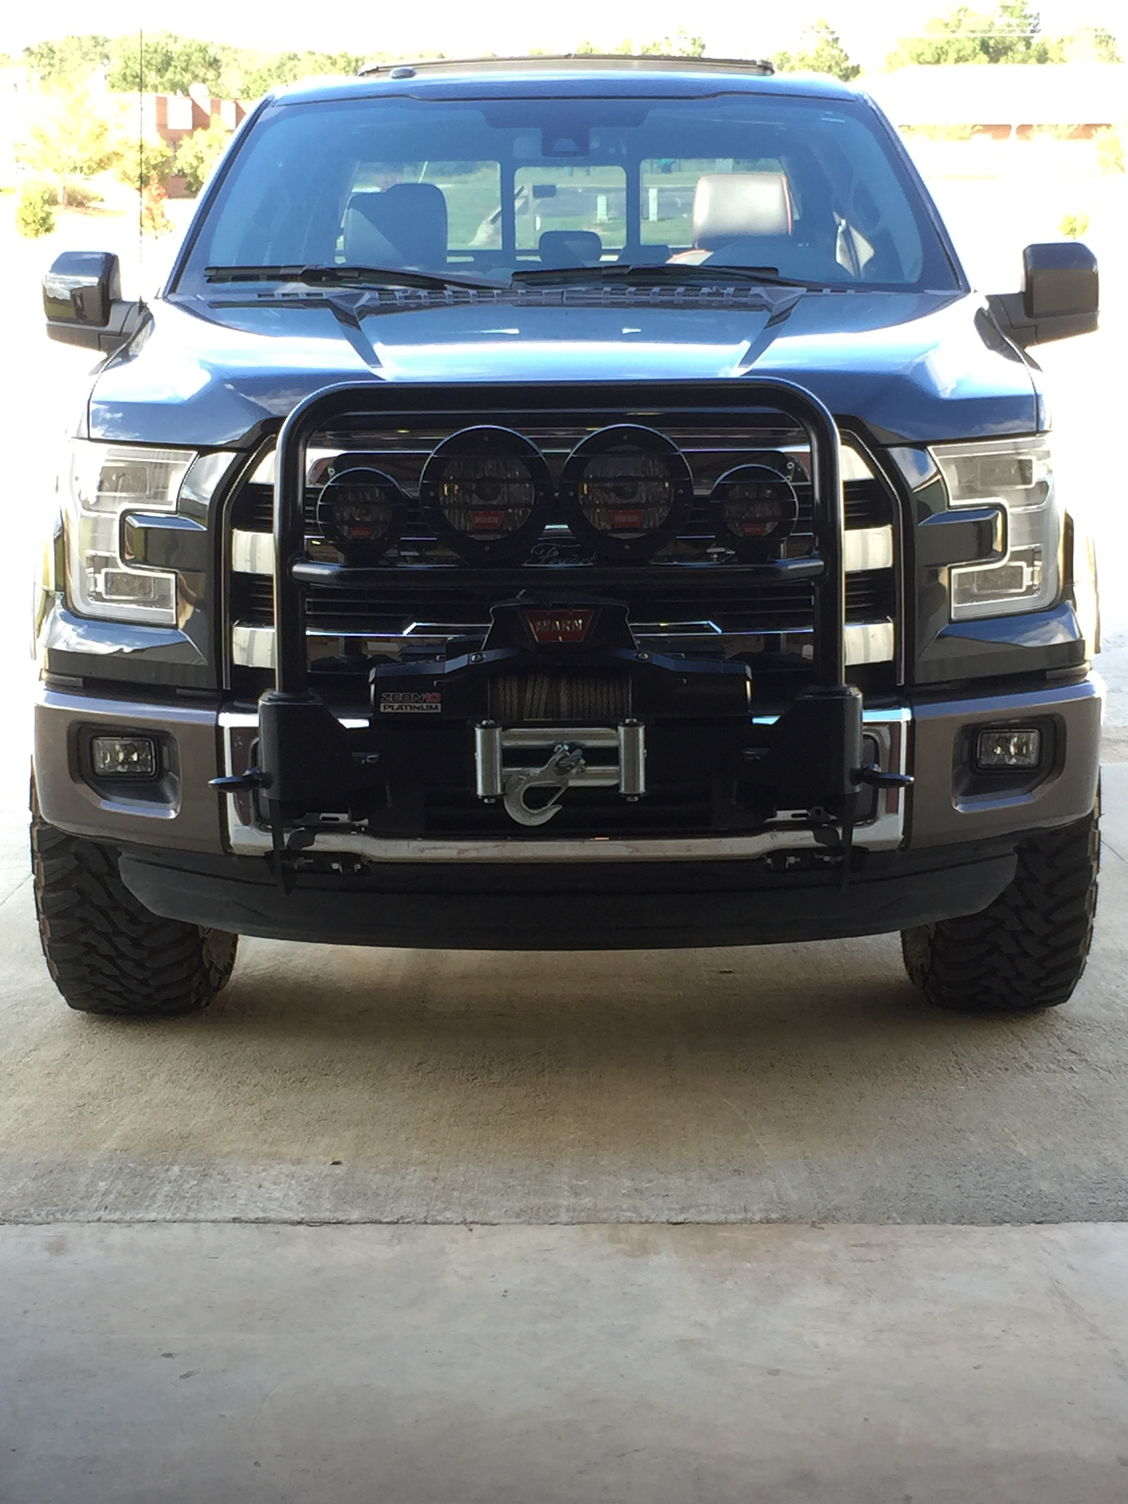 leveling  xs discussion page  ford  forum community  ford truck